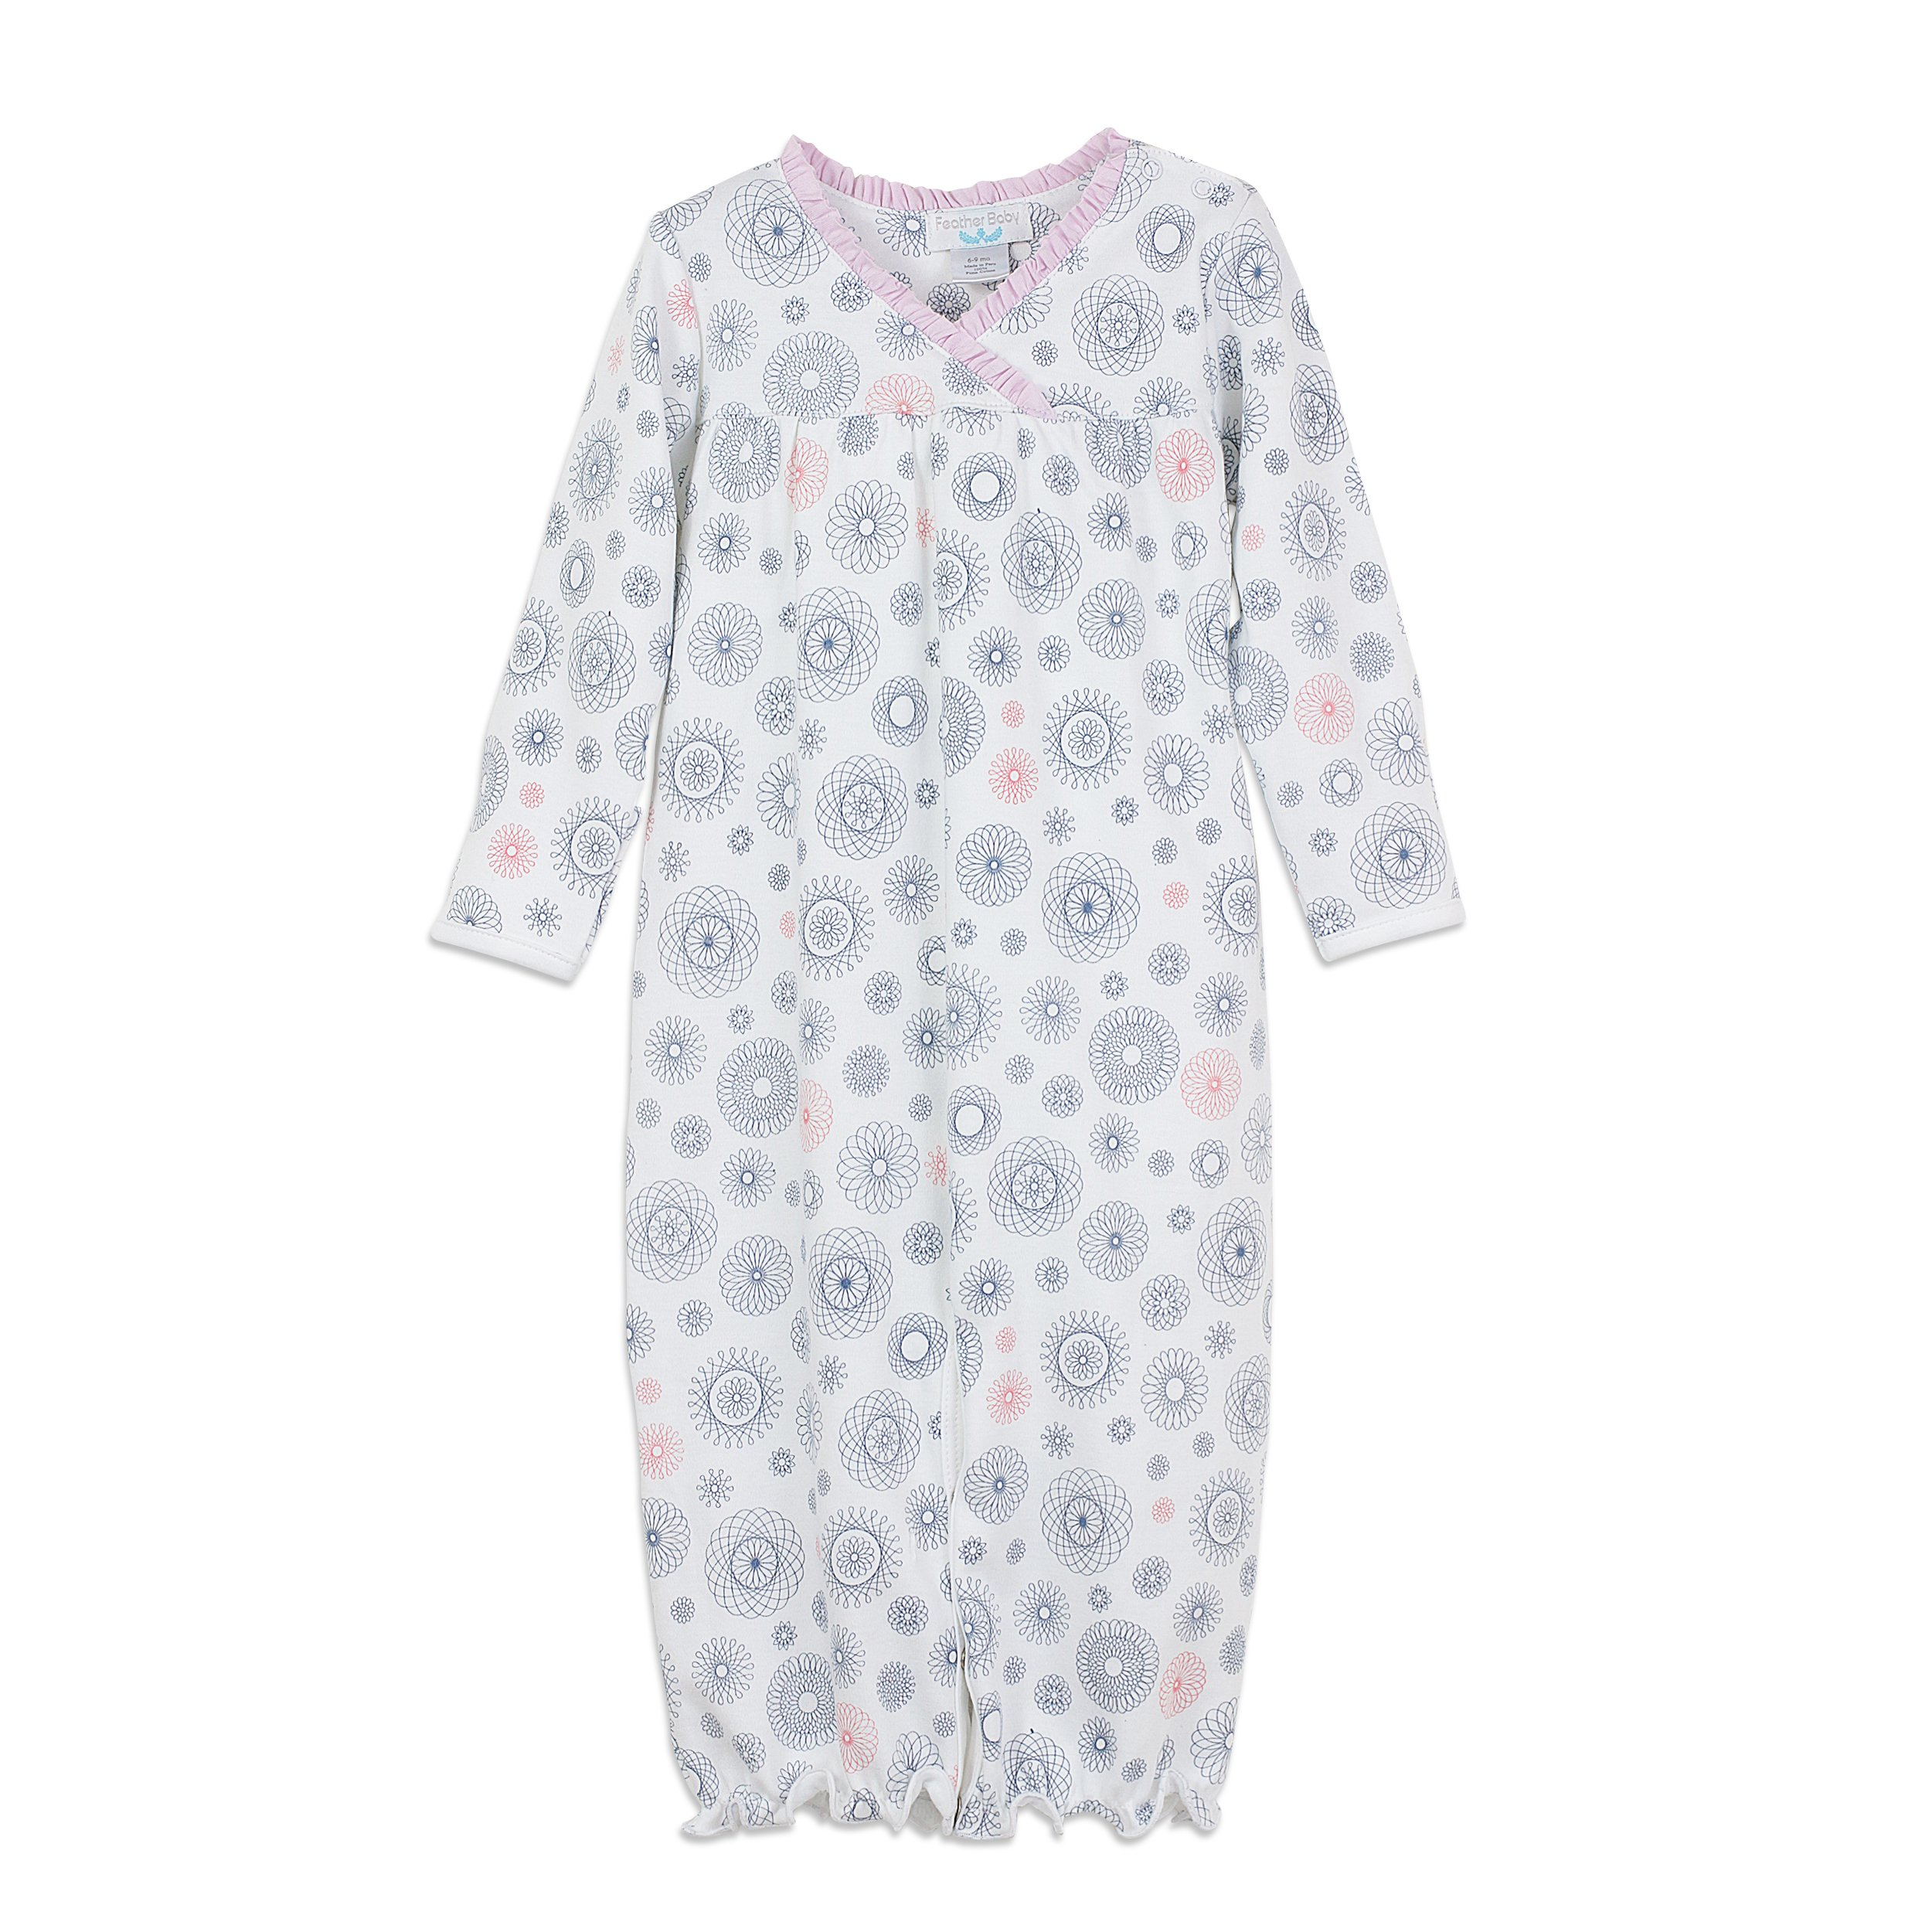 Feather Baby Girls Clothes Pima Cotton Crossover Converter Gown One-Piece Baby Sack